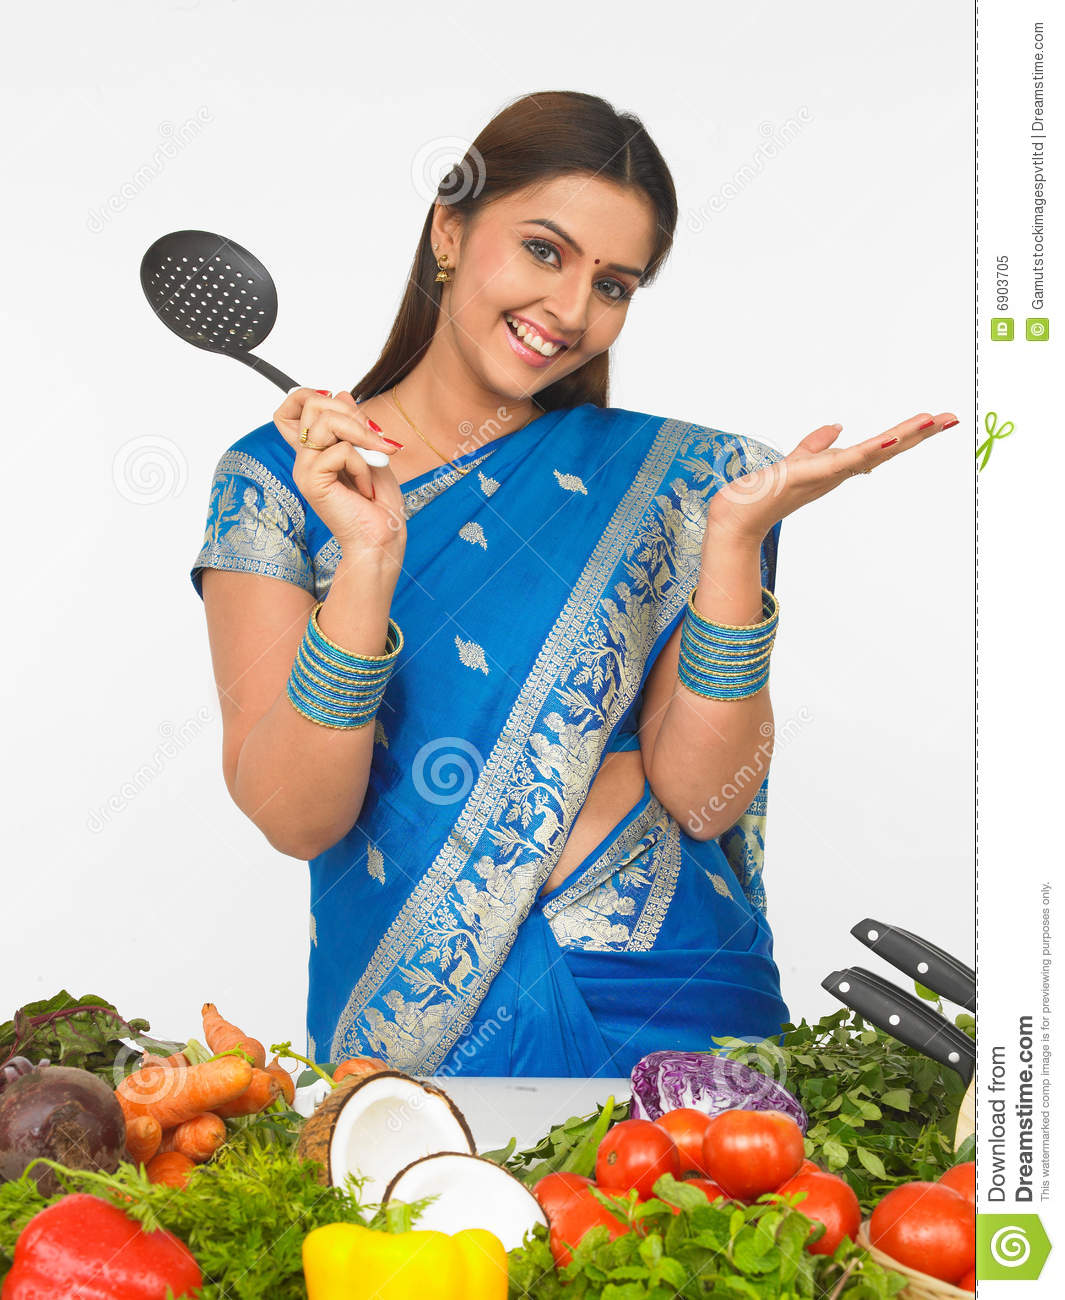 Indian lady chef clipart clip art download Asian Woman In The Kitchen Royalty Free Stock Photo - Image: 6903705 clip art download